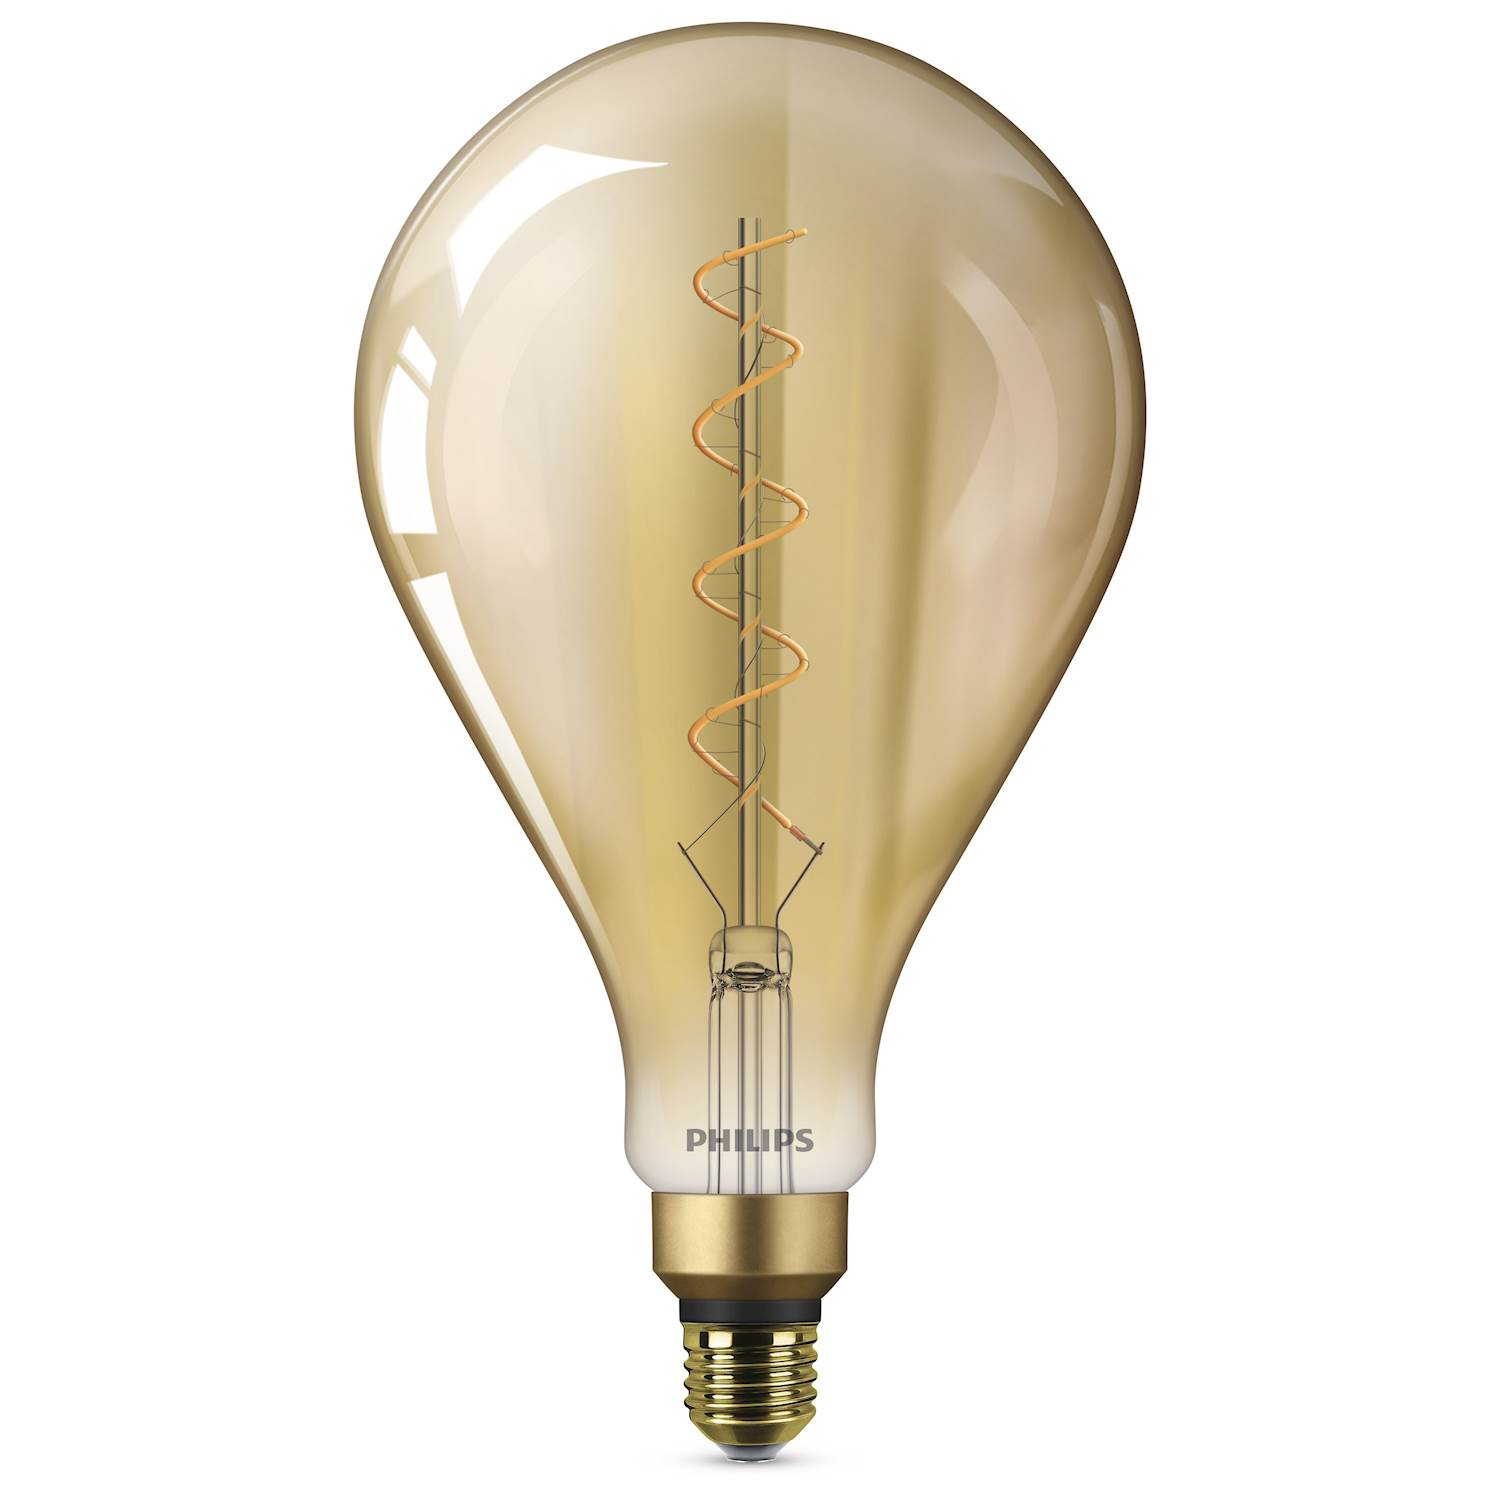 Philips LED GIANT 5W E27 GULD FL. ND